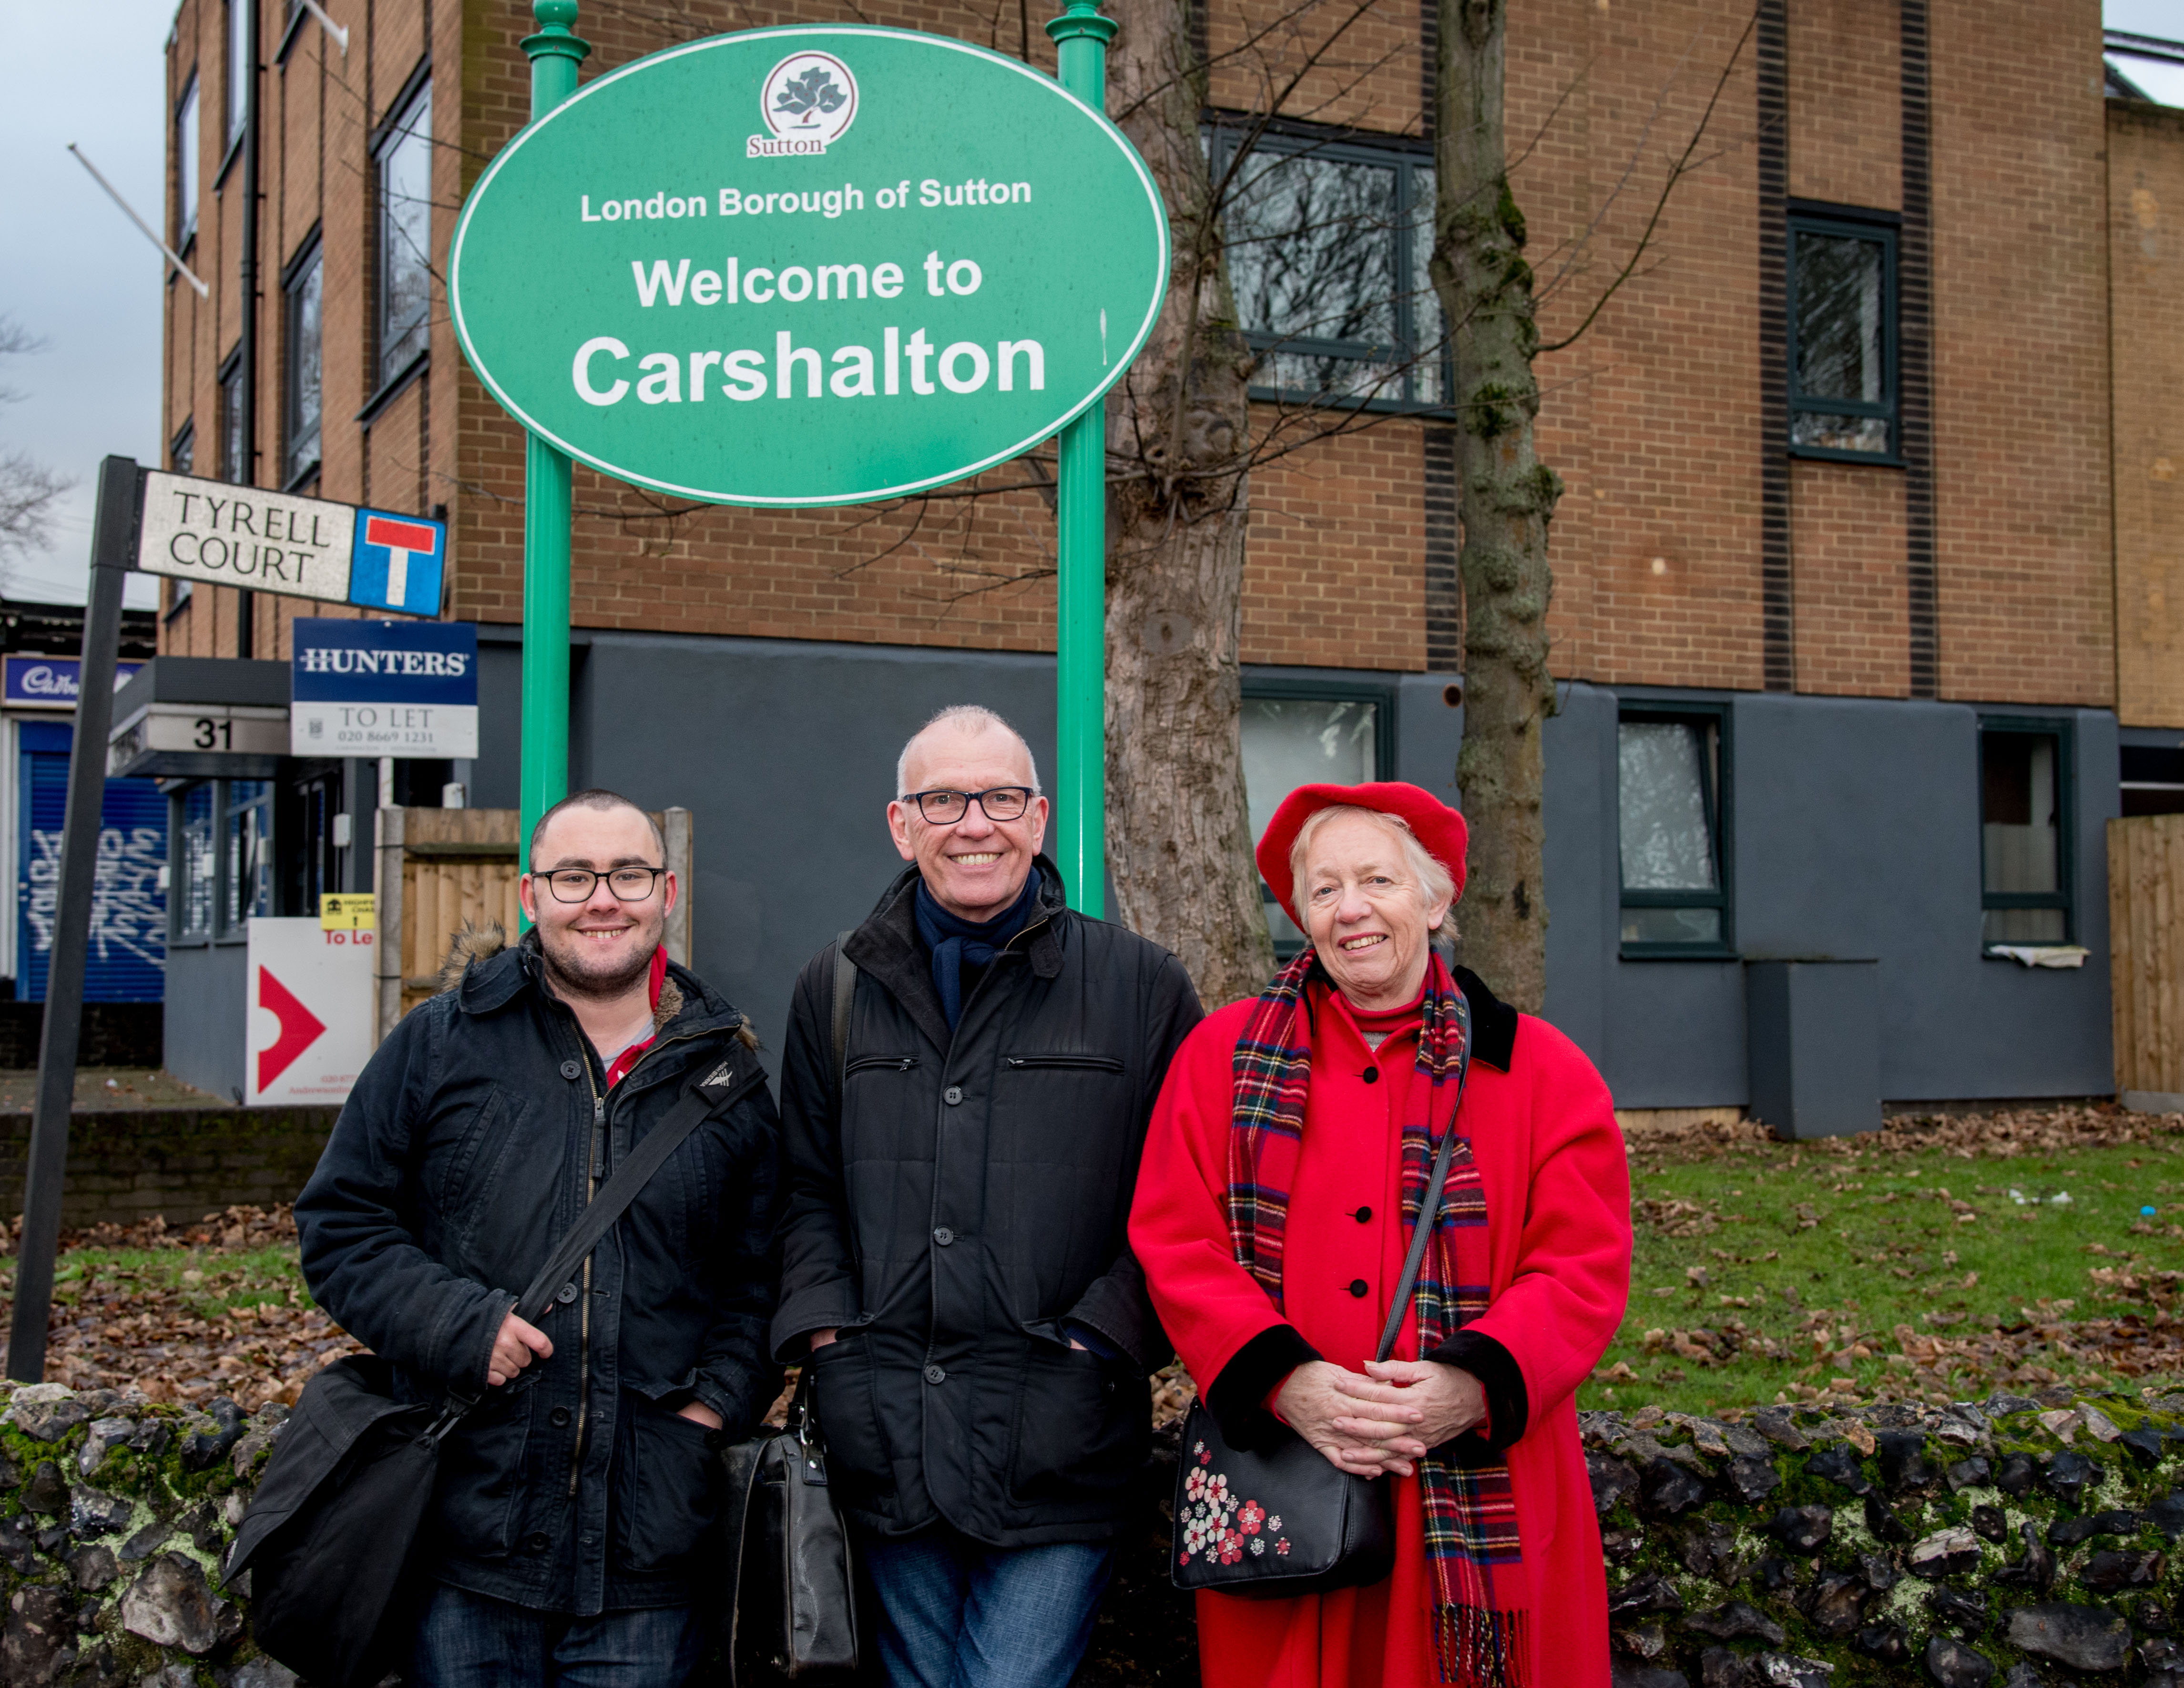 Carshalton Central parking: Where we are now